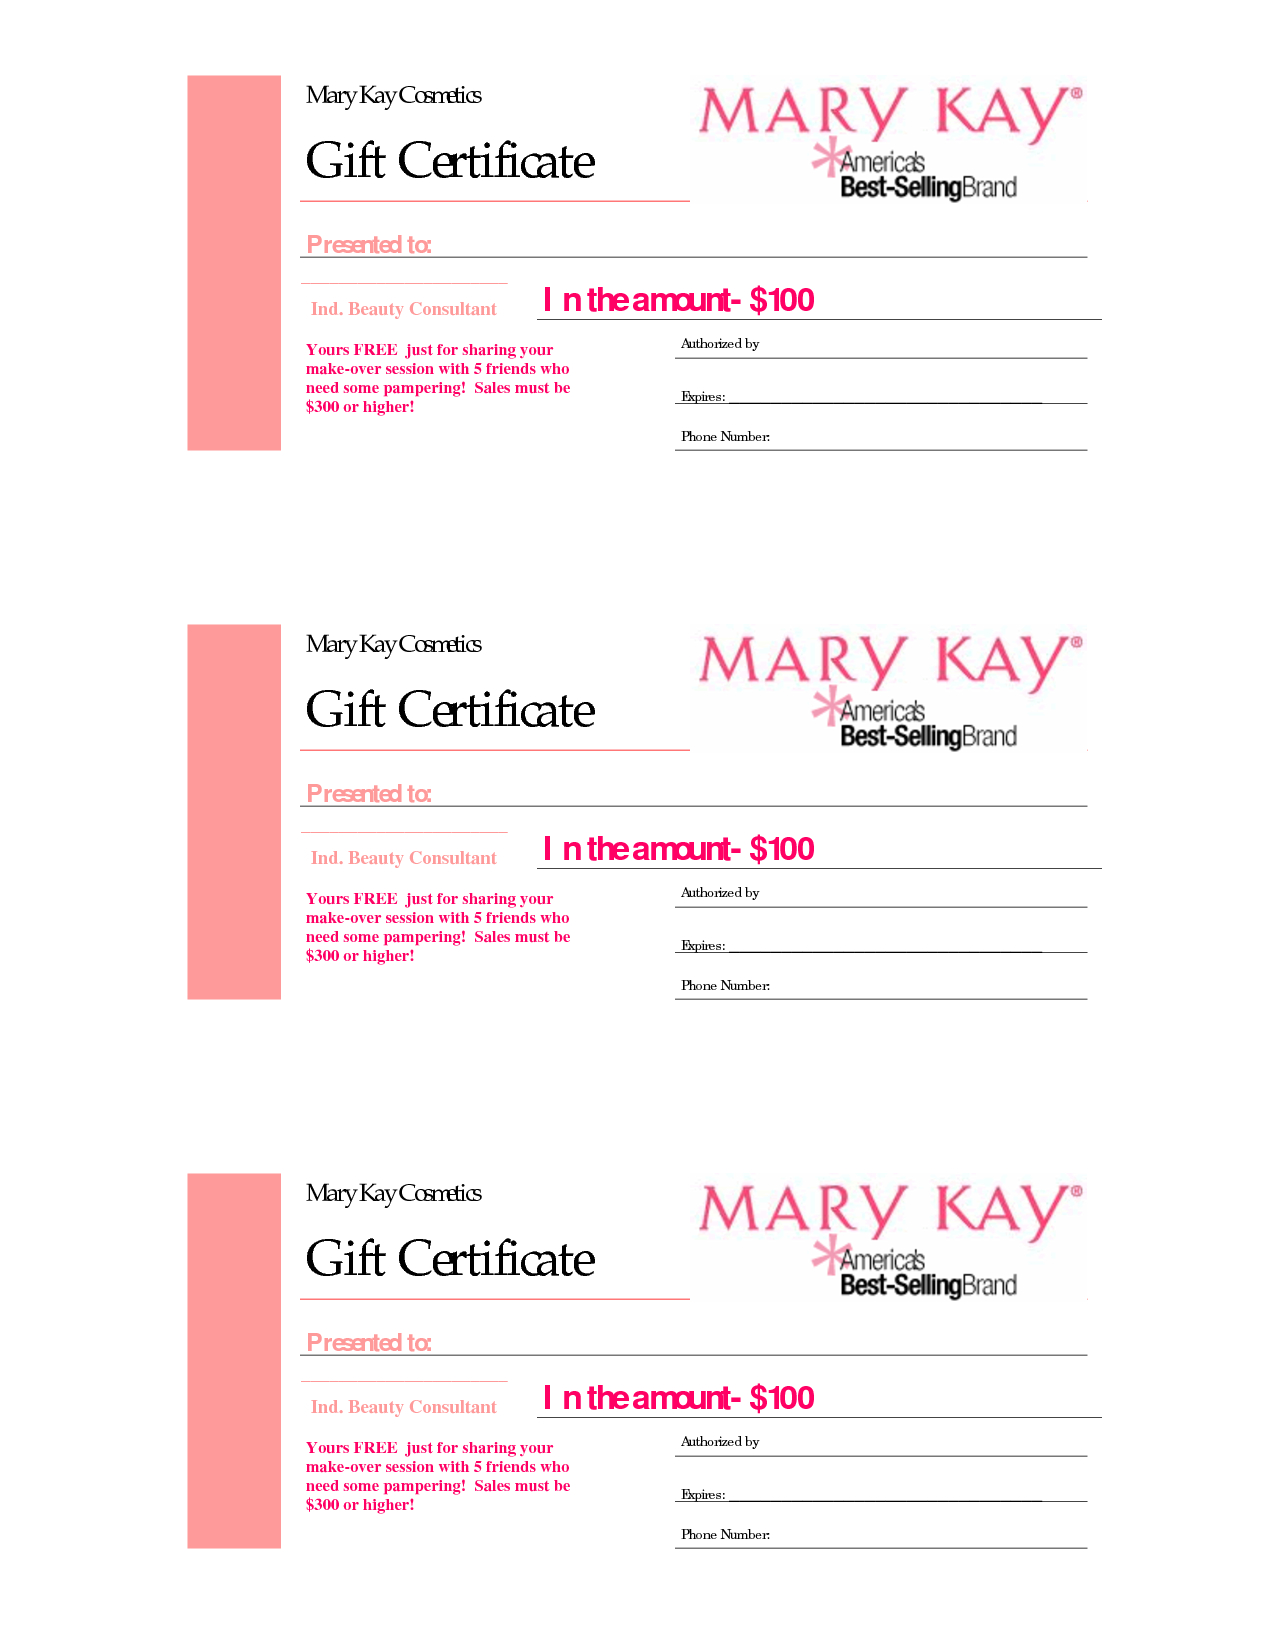 Gift Certificates  Mary Kay Gift Certificate Checo That With Regard To Nail Gift Certificate Template Free